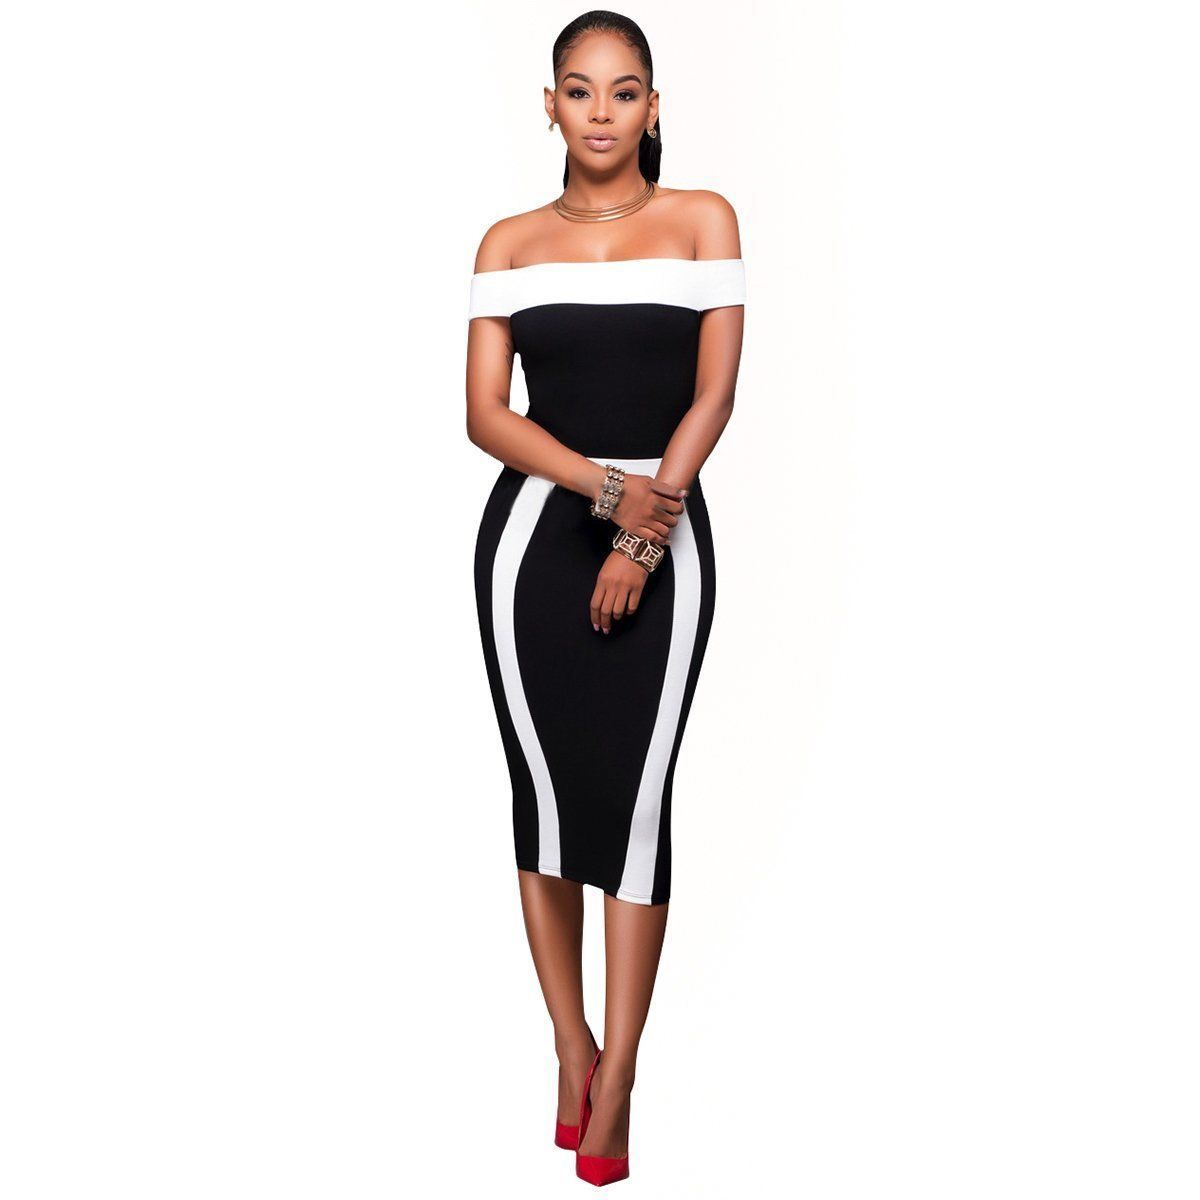 6835c00f65 Off Shoulder Bodycon Dress Women Clothes Clothing Dresses Casual Bandage  short Sleeve Party Fashion Women